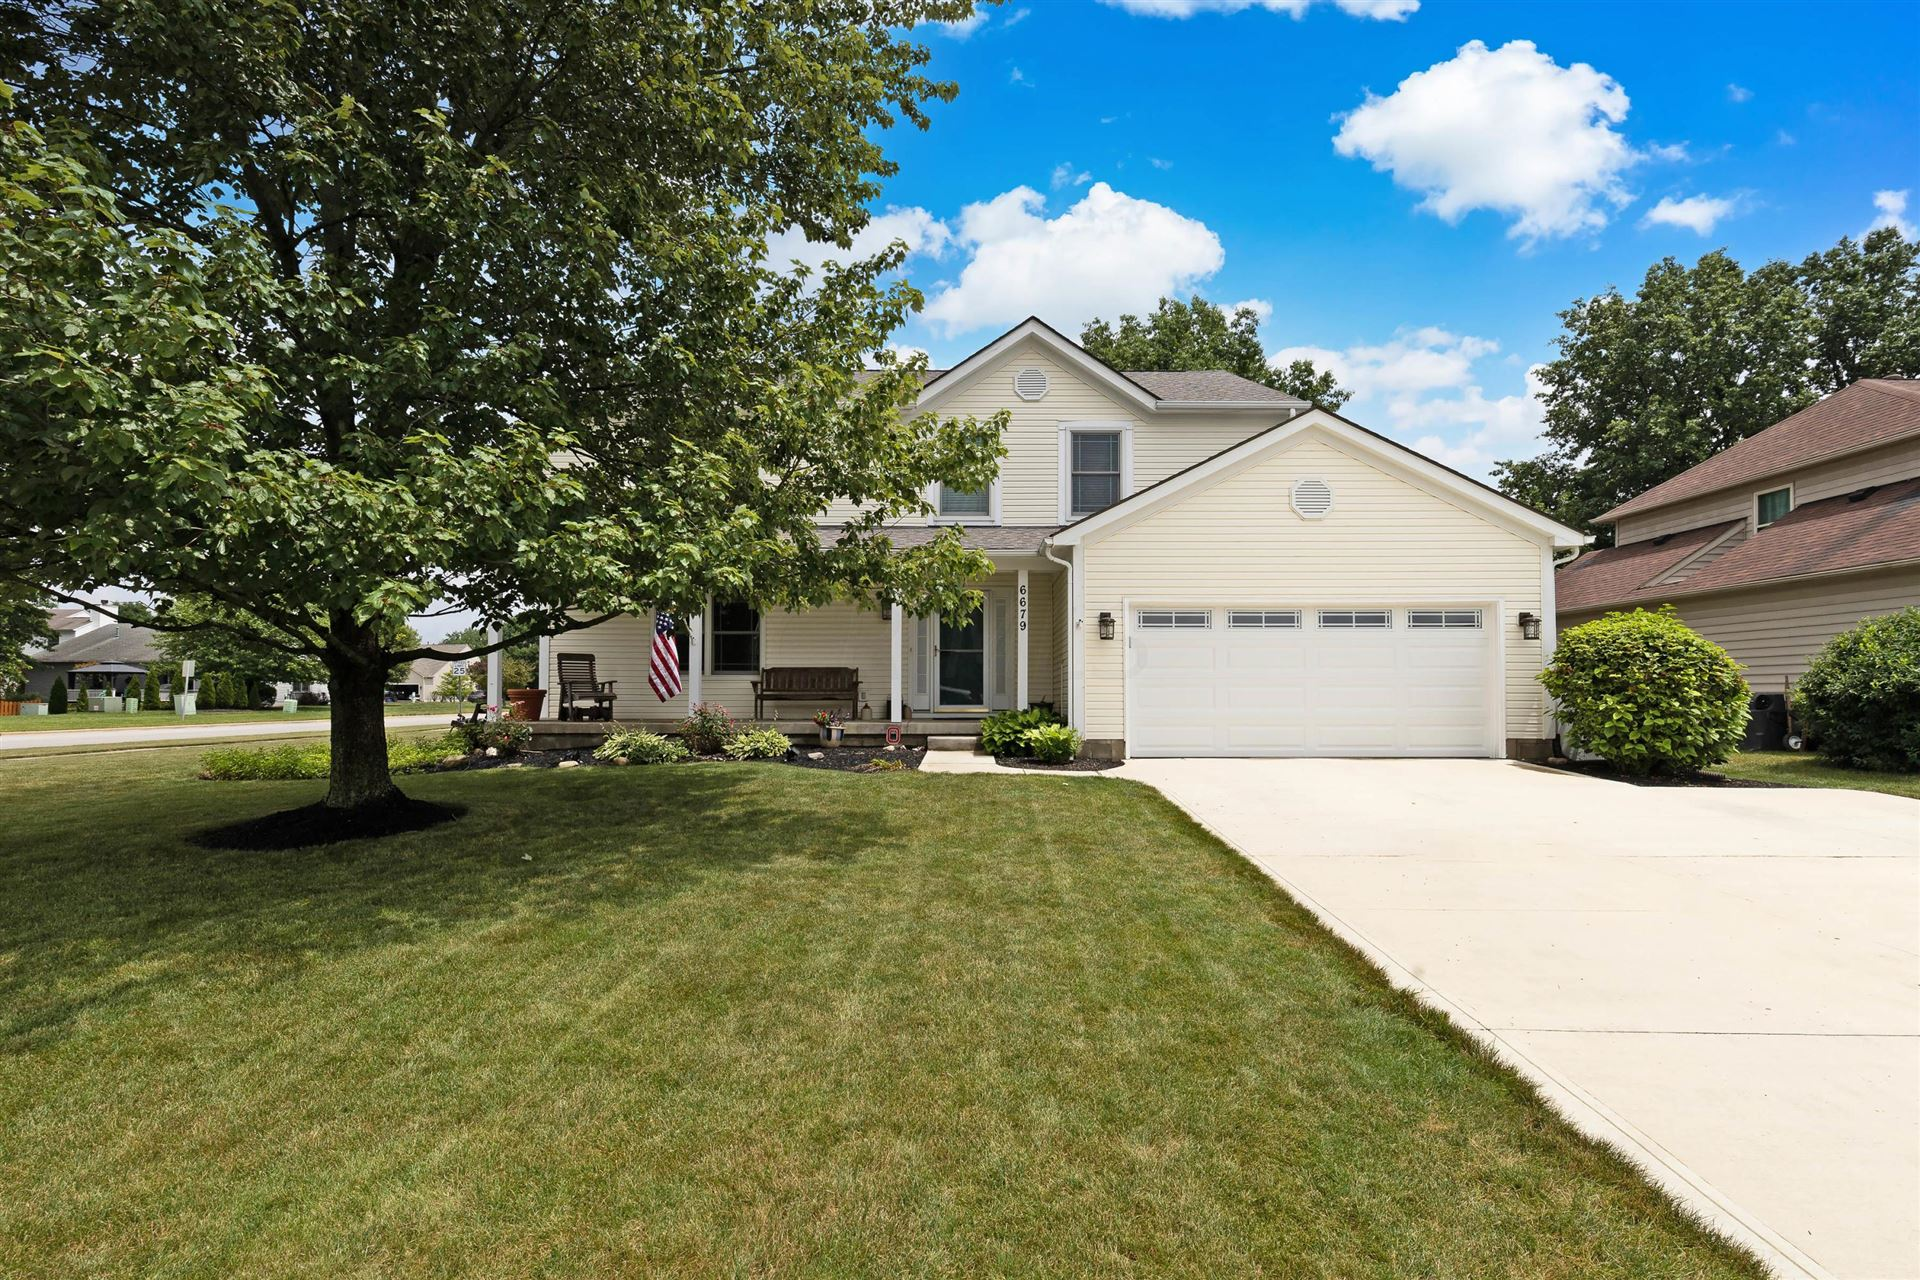 Photo of 6679 Alberta Place, Westerville, OH 43082 (MLS # 221022249)